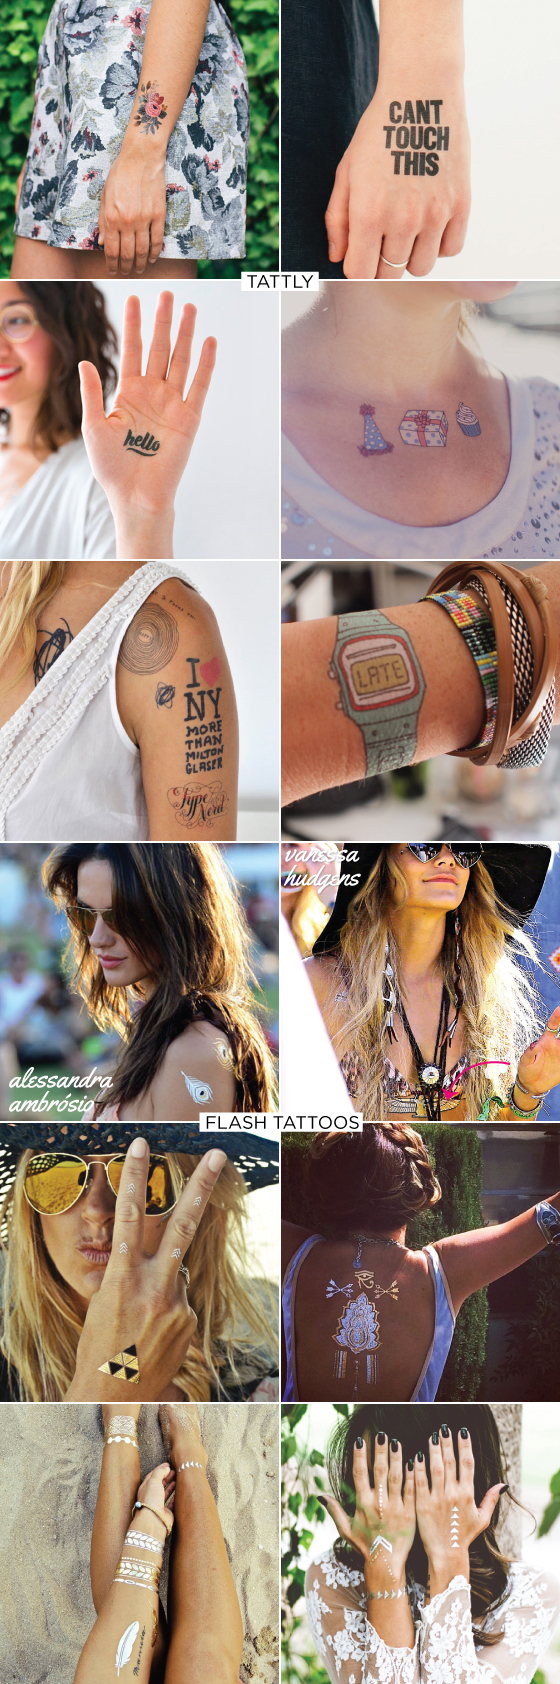 tattoo-tatuagem-removivel-onde-comprar-site-le-petit-pirate-farm-copa-instagram-temporaria-flash-festival-coachella-tattly-site